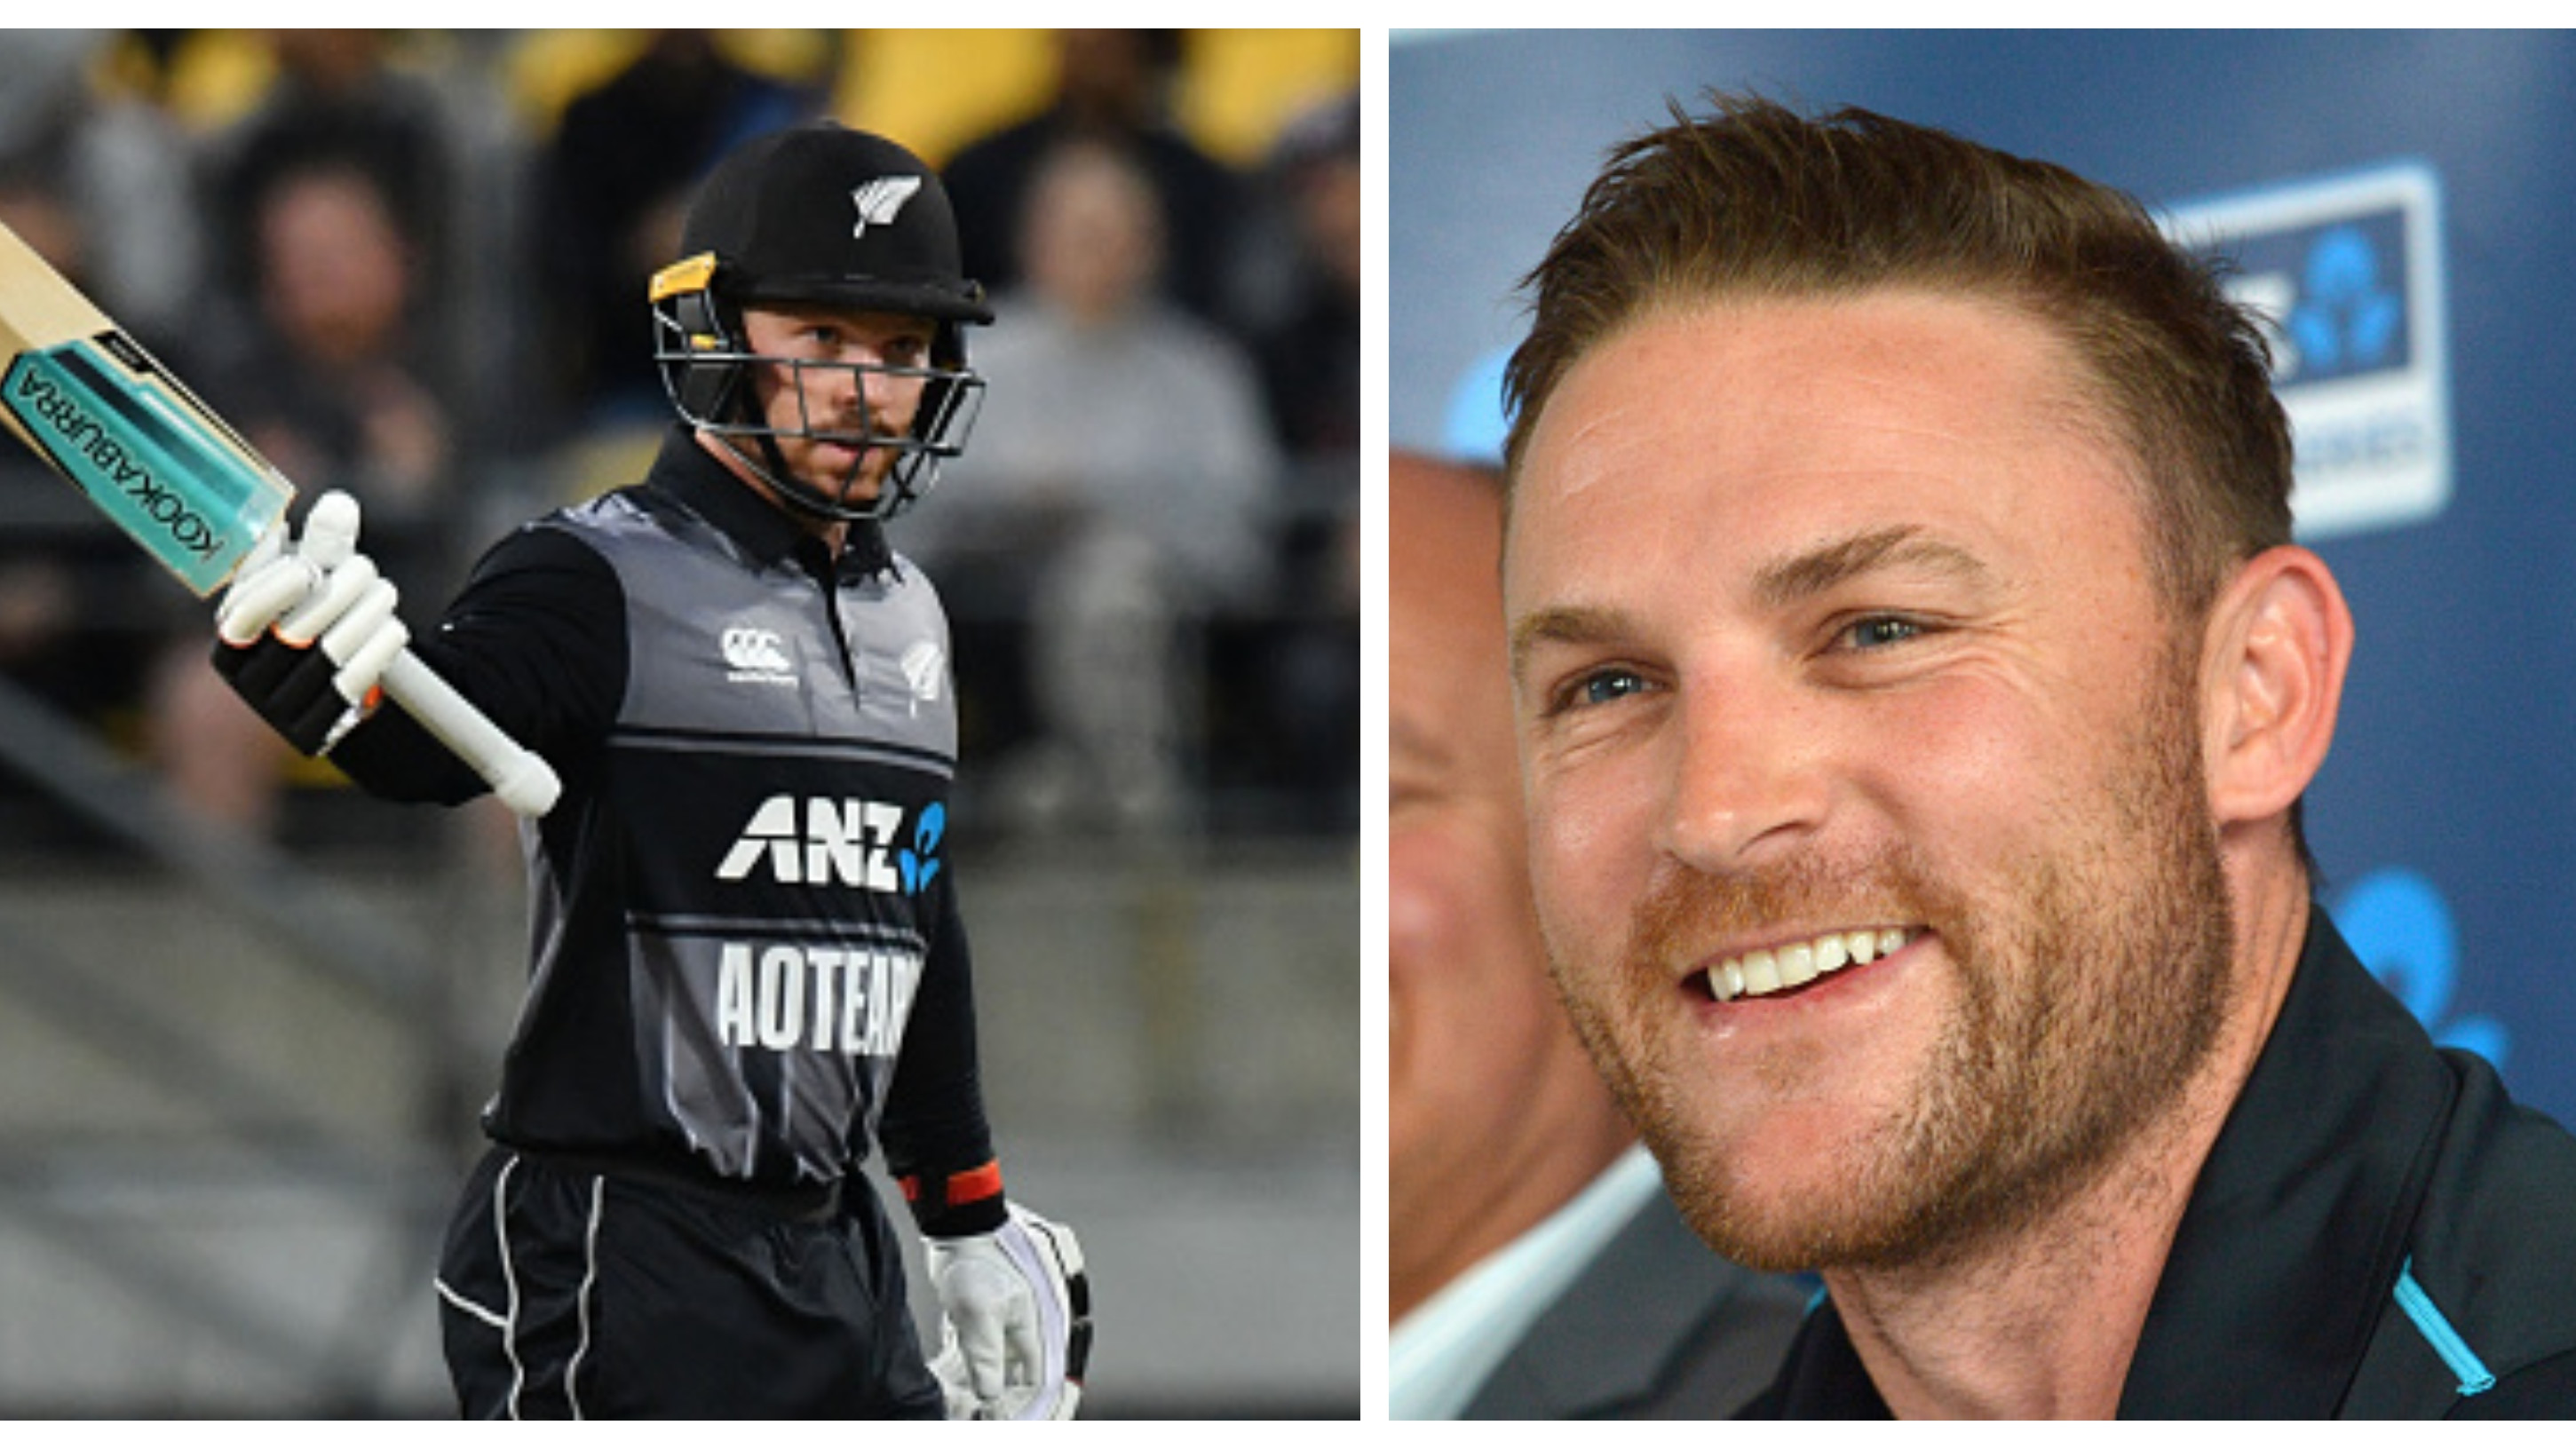 NZ v IND 2019: YouTubed Brendon McCullum before this match, says Tim Seifert